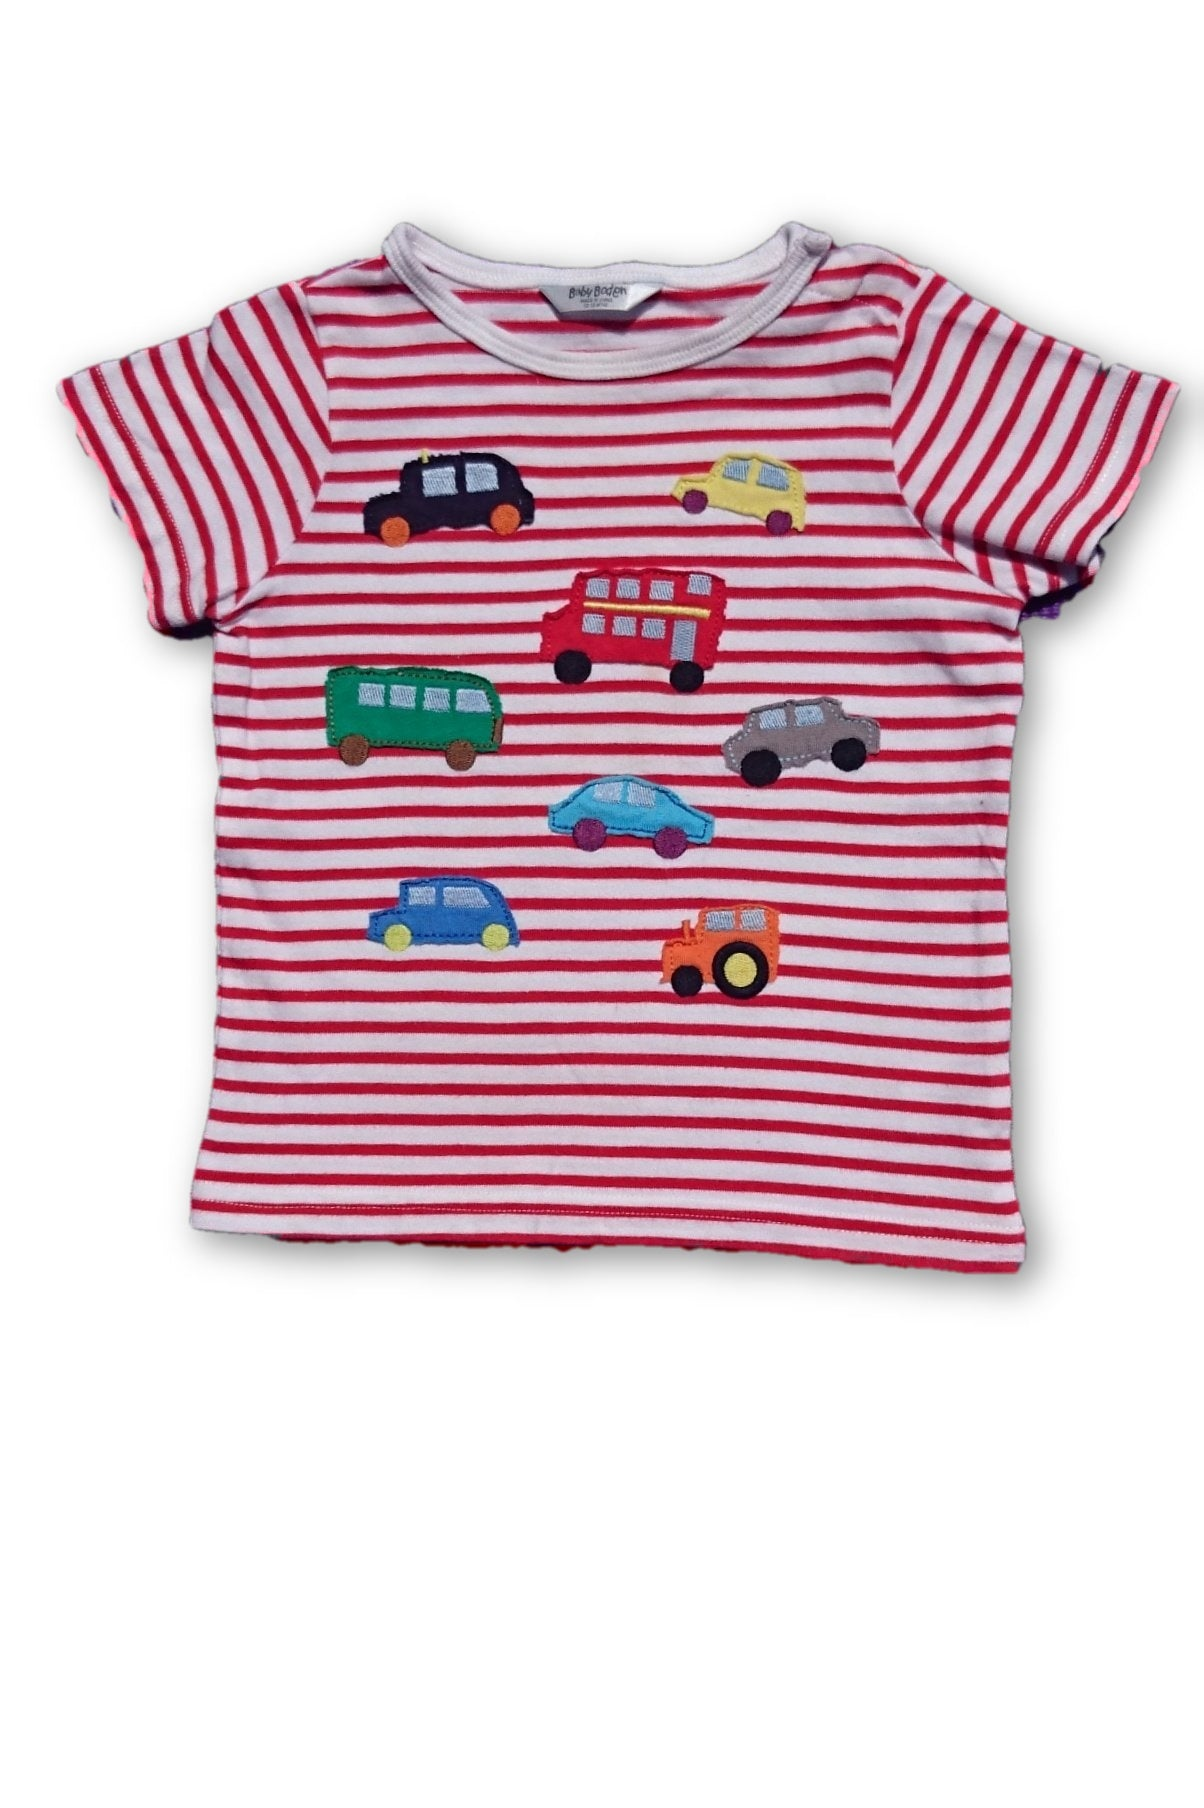 Mini Boden T-Shirt size 1 - Use-Ta! Preloved Children's Wear Online